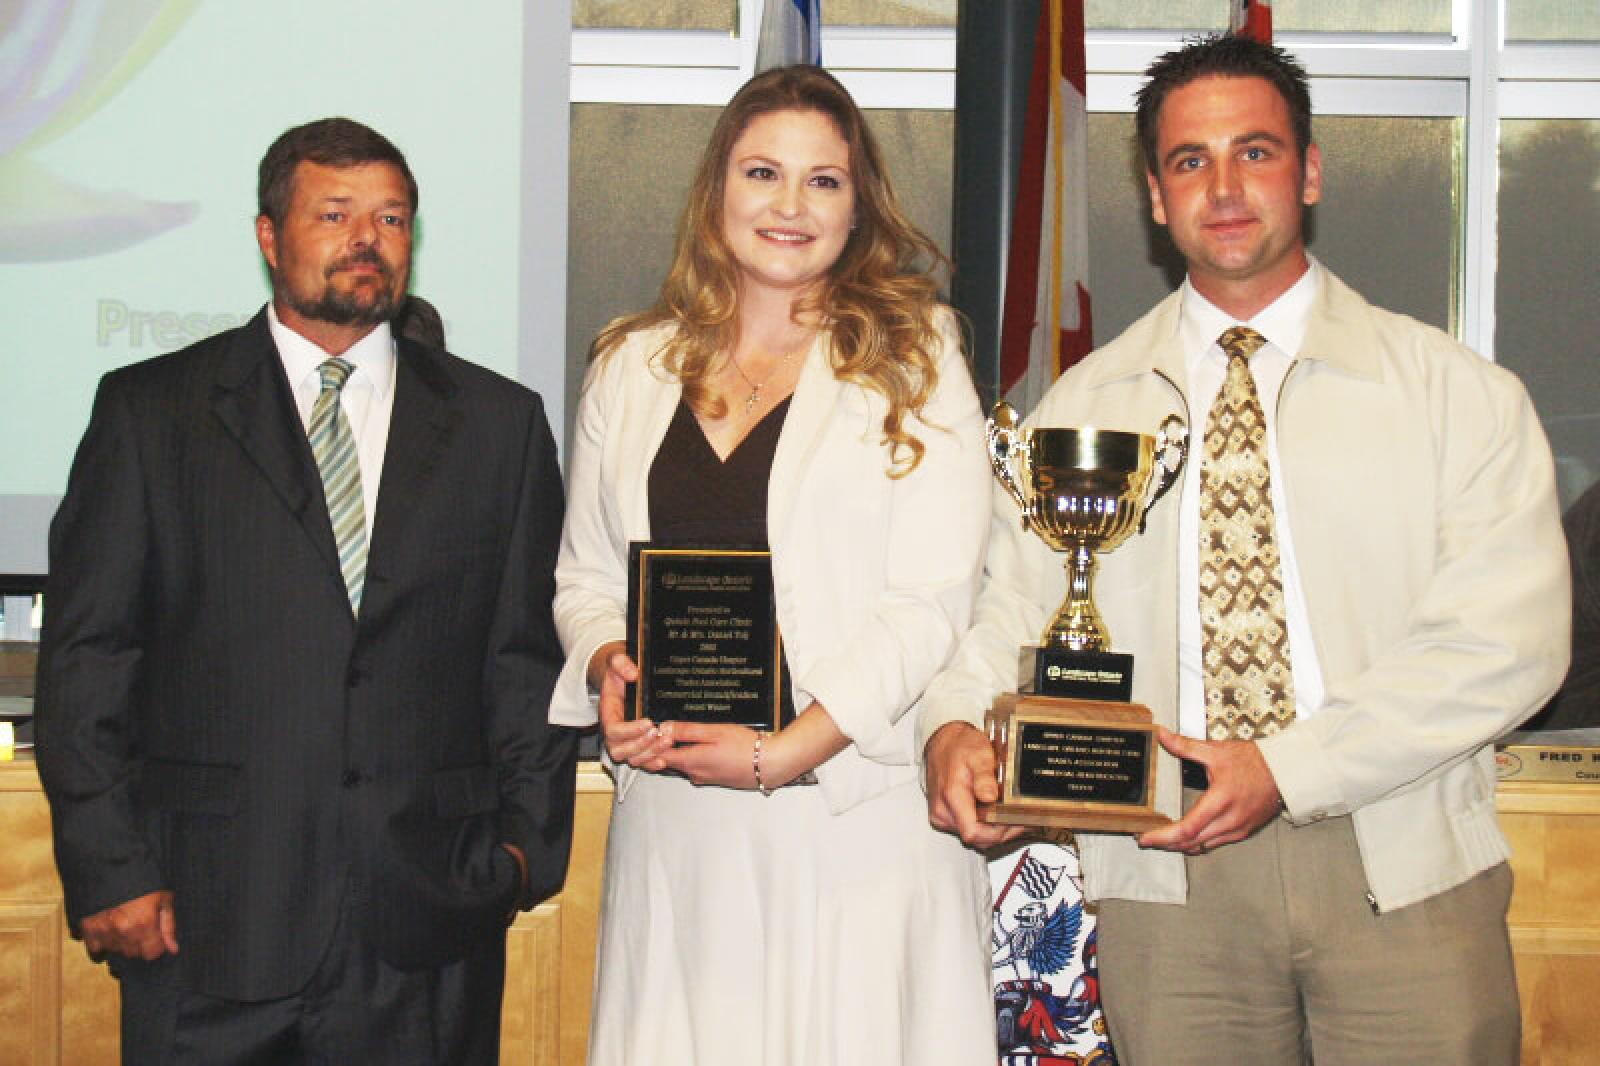 The 5th Annual Commercial Beautification Award